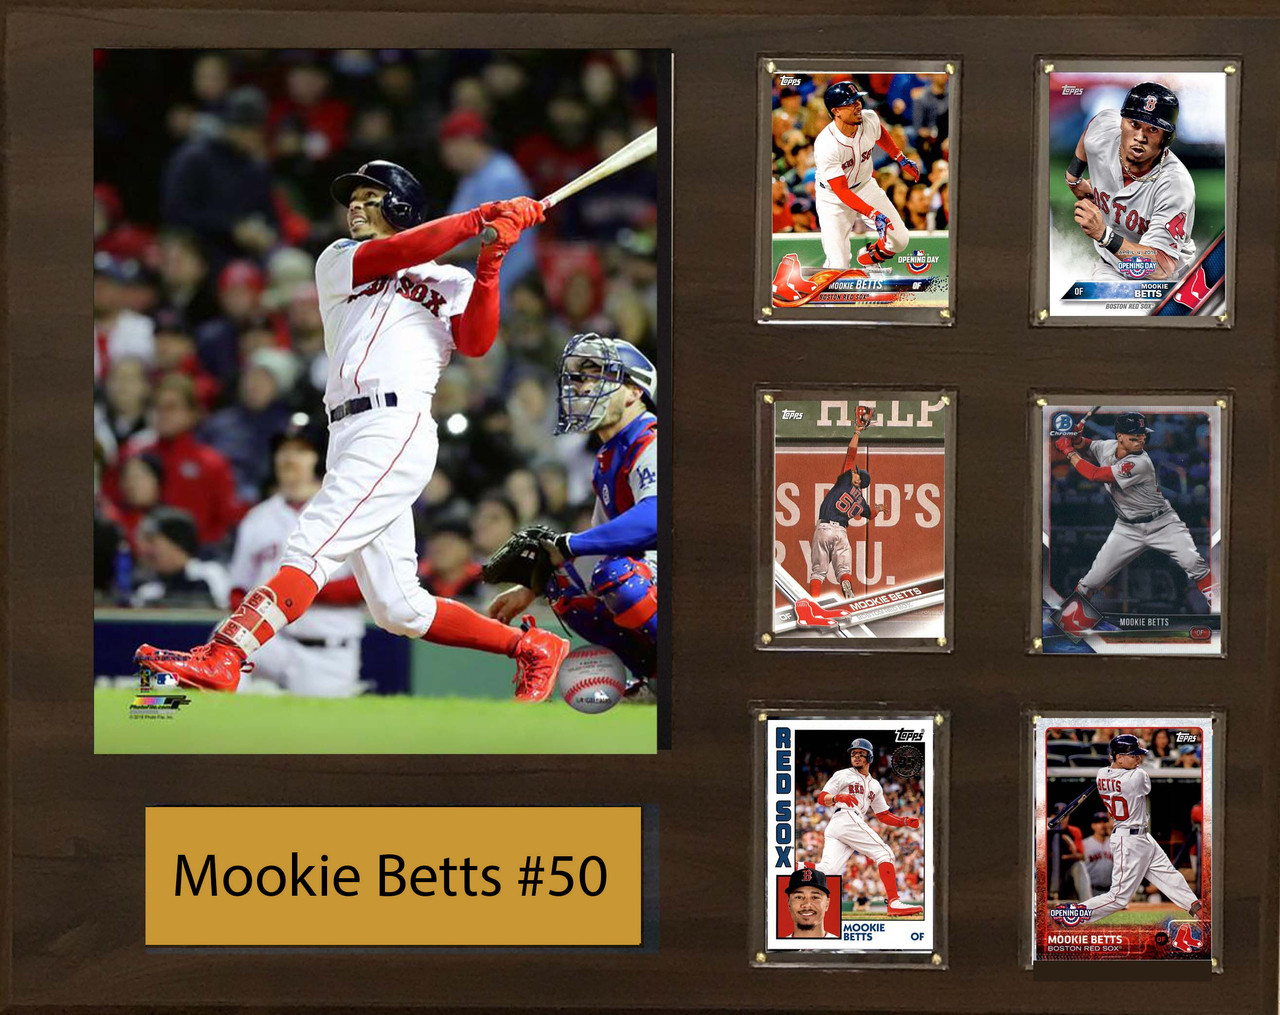 Mookie Betts Boston Red Sox 16x20 Plaque 8x10 Action Photo And 6 Baseball Cards